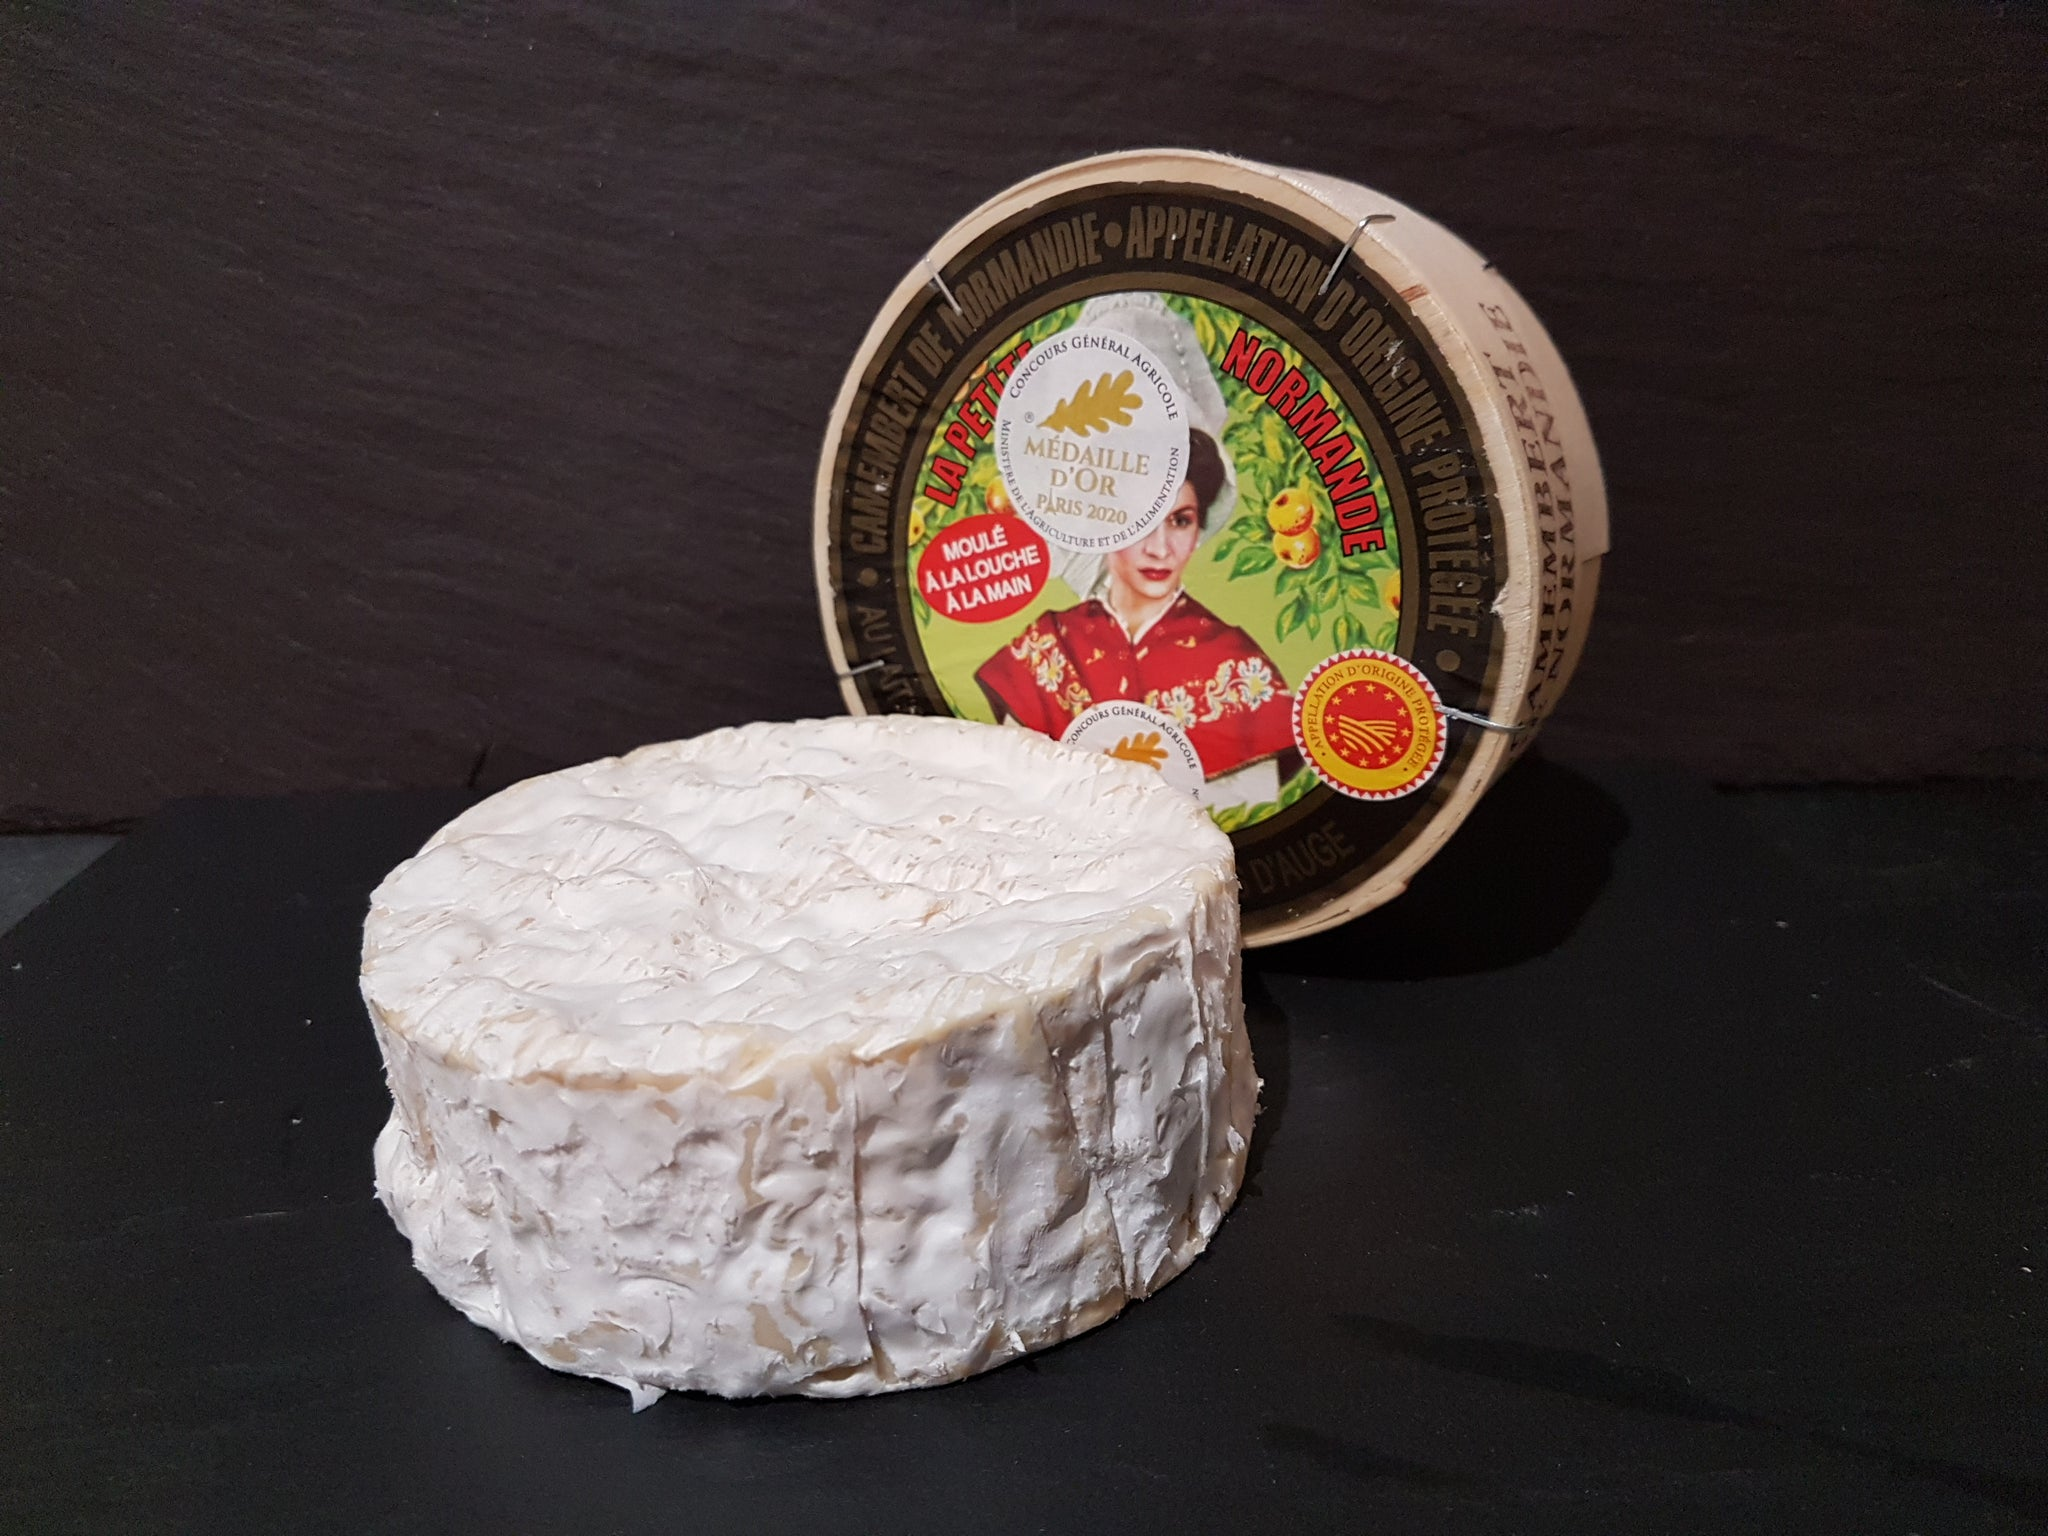 Camembert (raw milk)